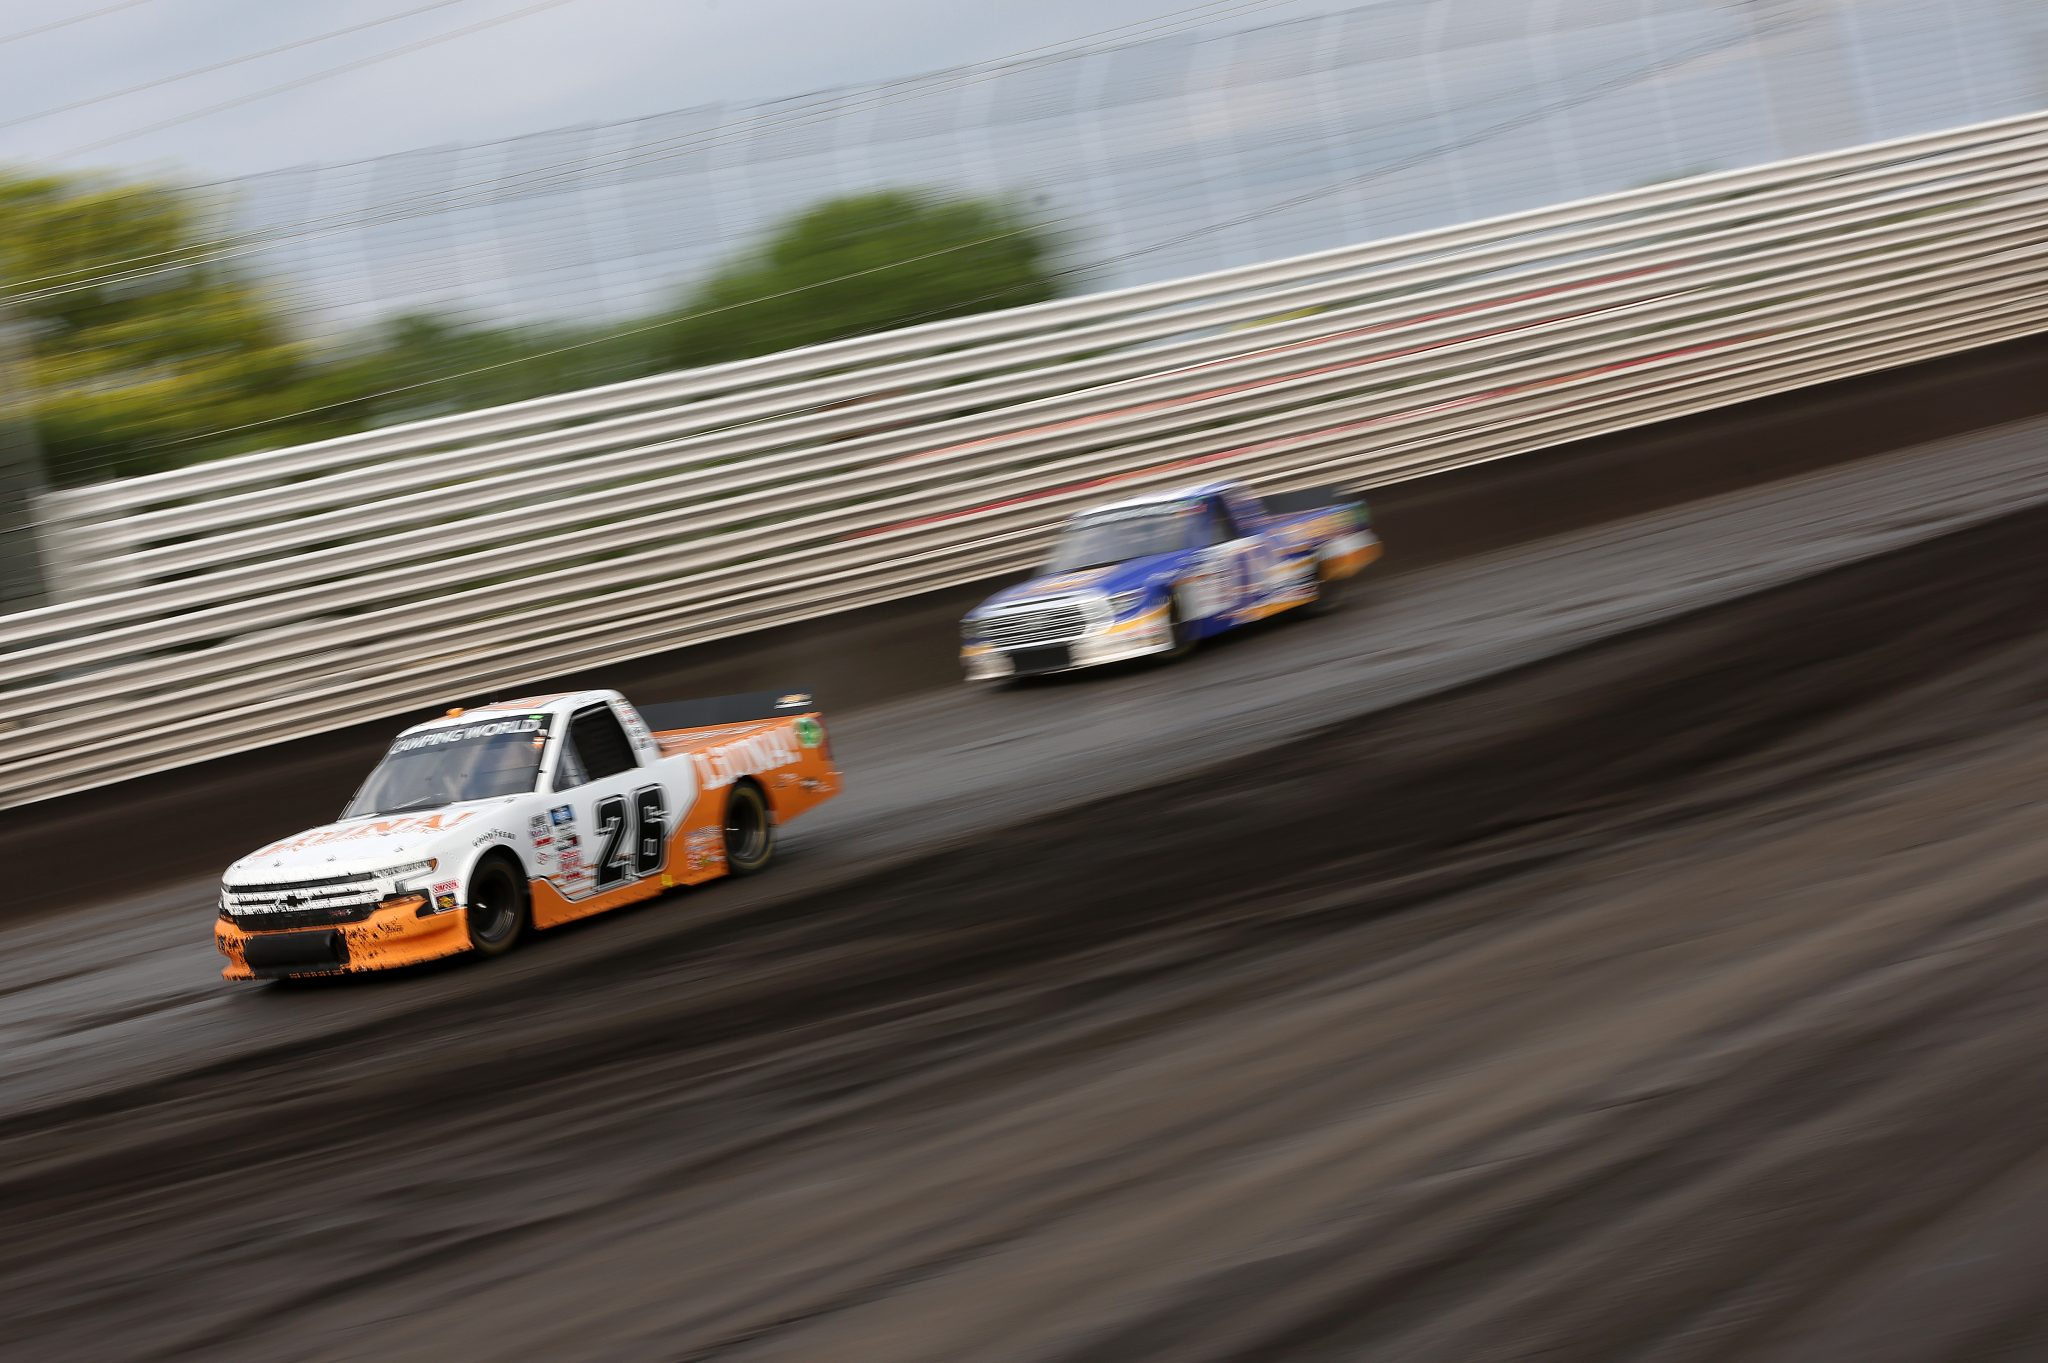 KNOXVILLE, IOWA - JULY 09: Tyler Ankrum, driver of the #26 LiUNA! Chevrolet, drives during qualifying for the NASCAR Camping World Truck Series Corn Belt 150 presented by Premier Chevy Dealers at Knoxville Raceway on July 09, 2021 in Knoxville, Iowa. (Photo by James Gilbert/Getty Images) | Getty Images